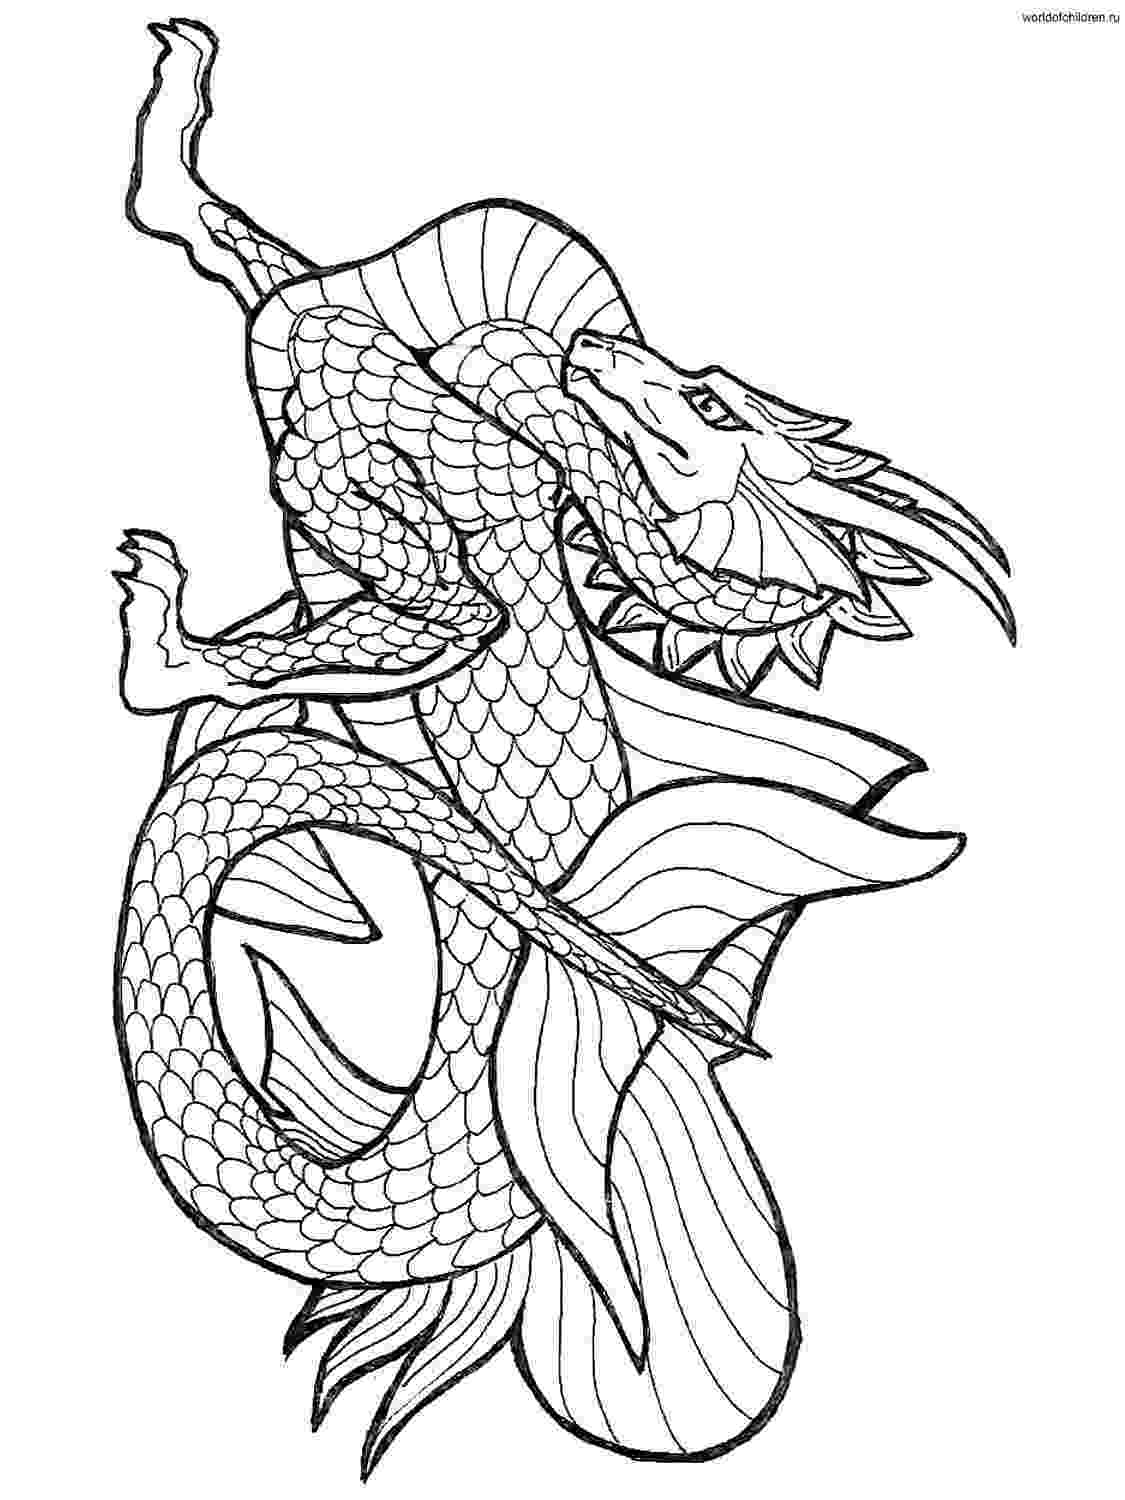 dragons coloring pages dragon coloring pages to download and print for free pages coloring dragons